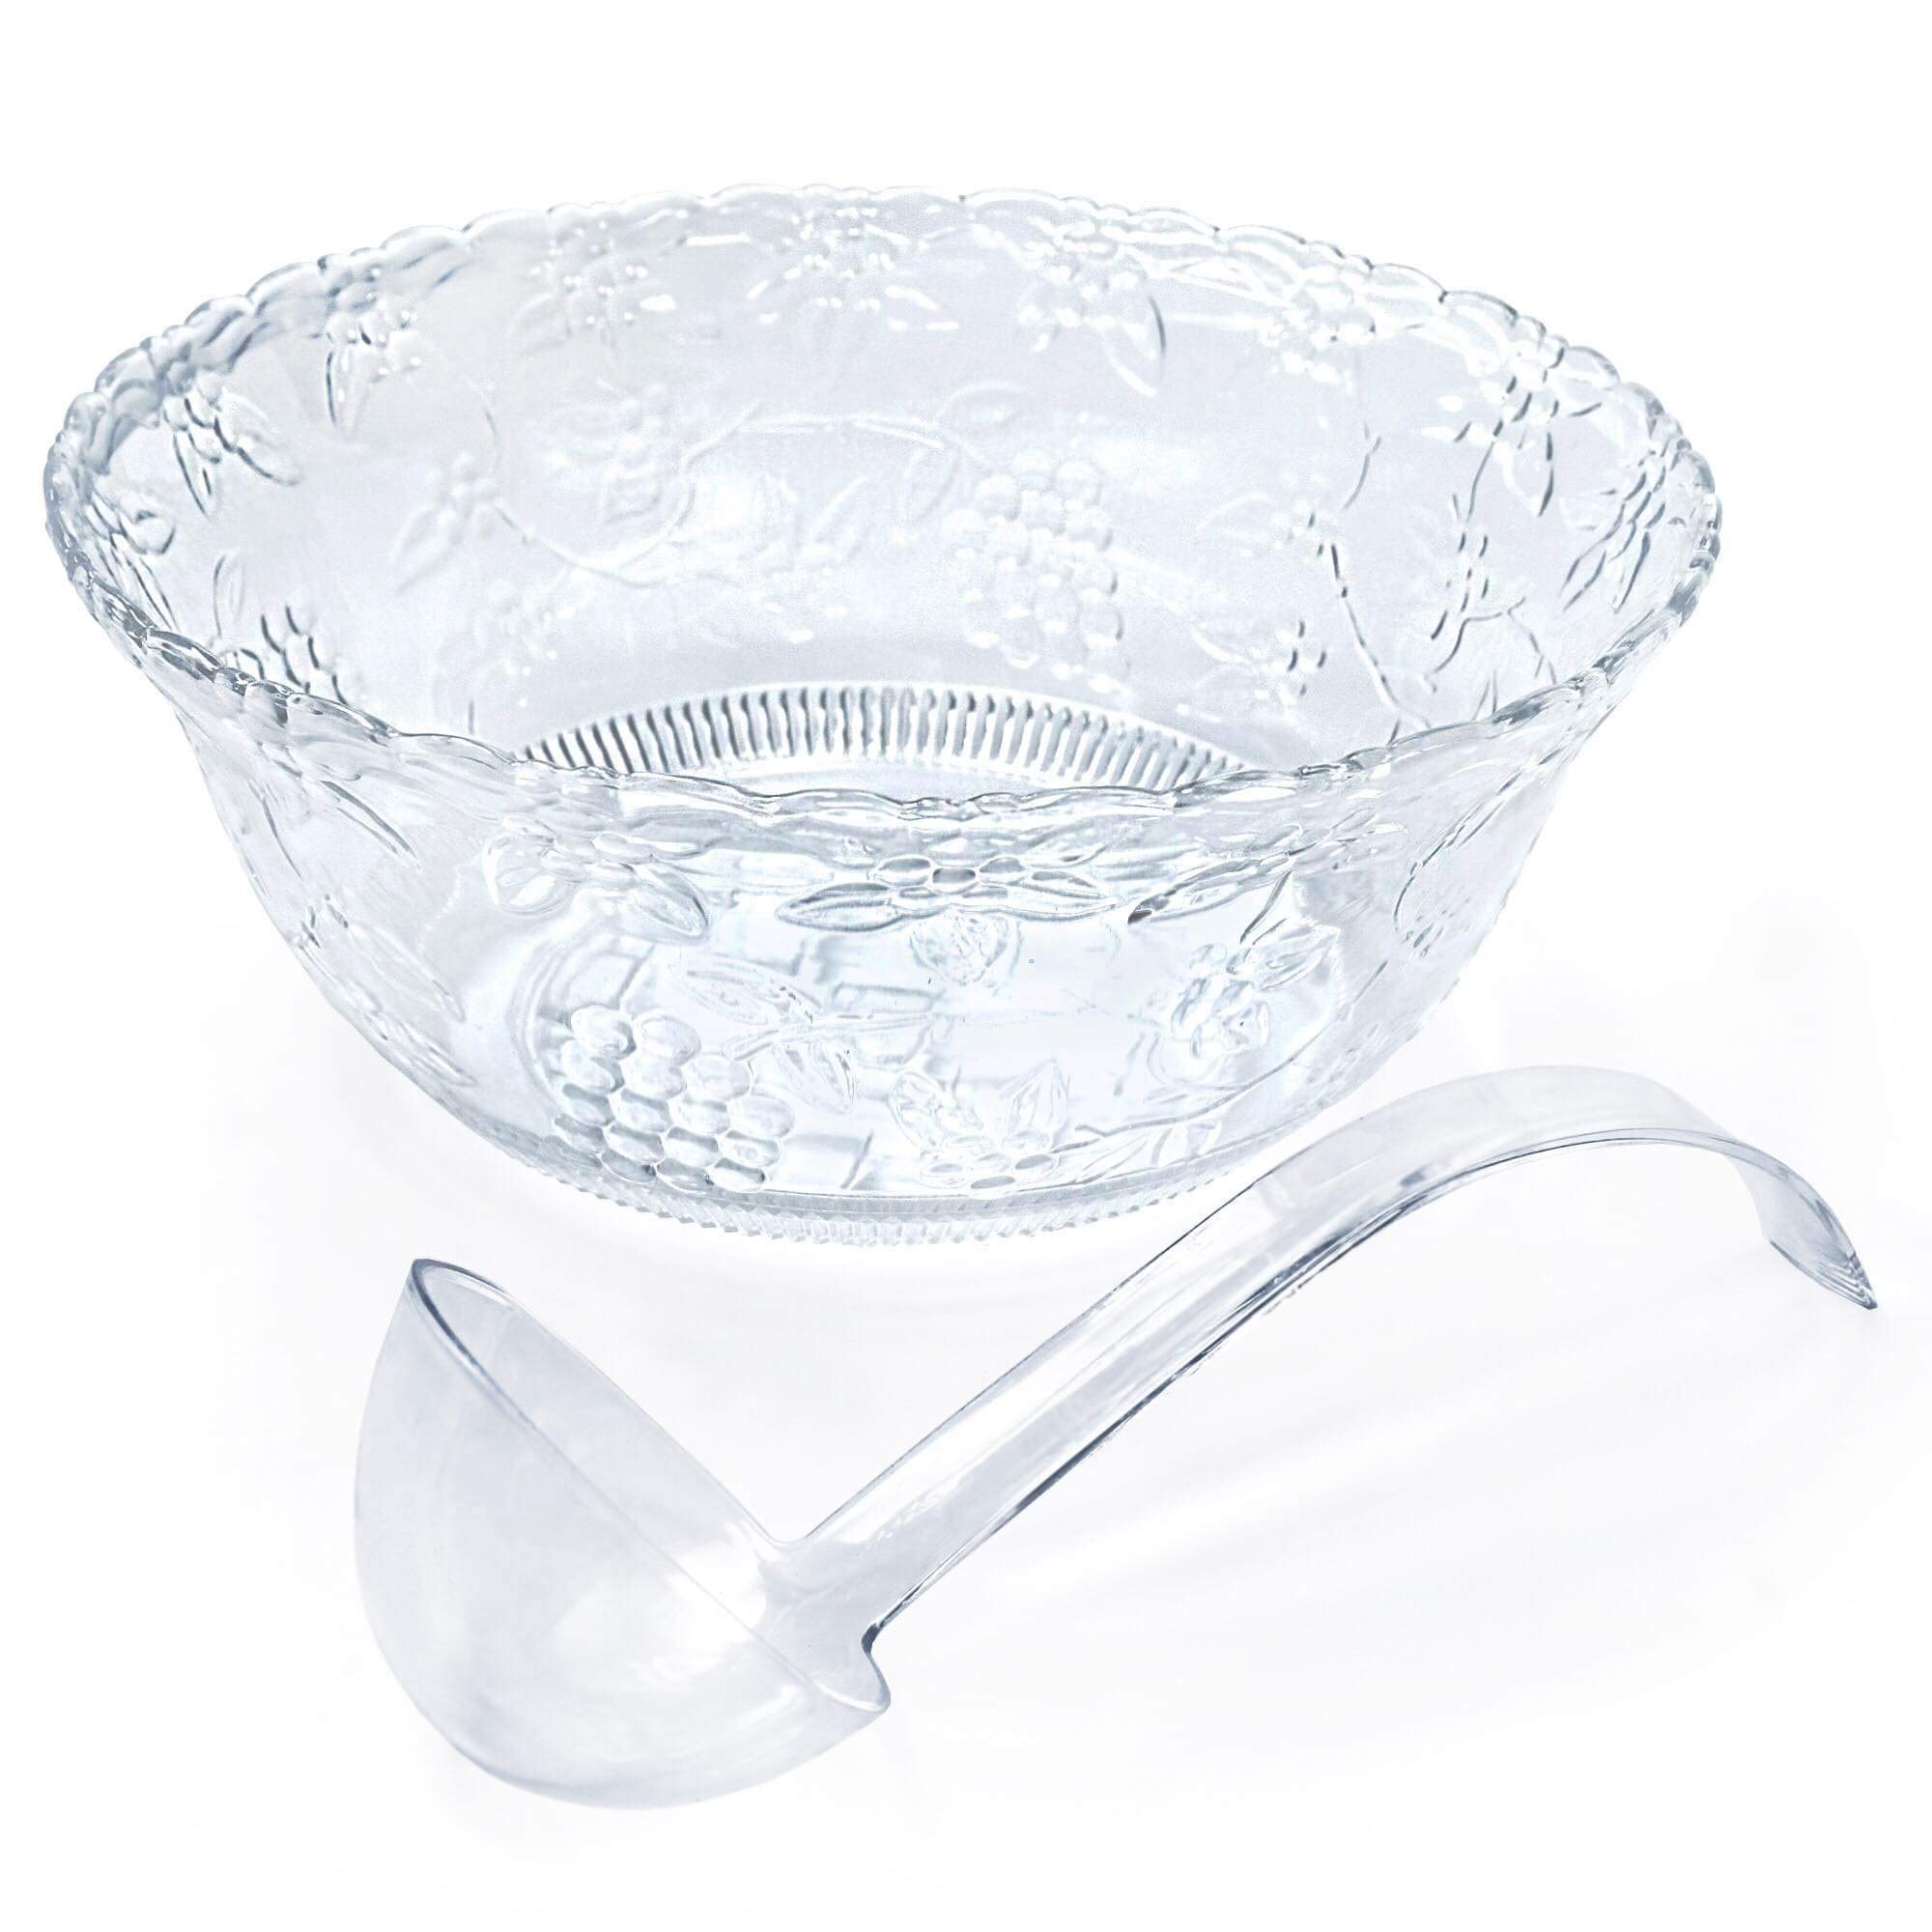 Clear Plastic Punch Bowl With Ladle - Large 2 Gallon Bowl With 5 oz Ladle by ANZL